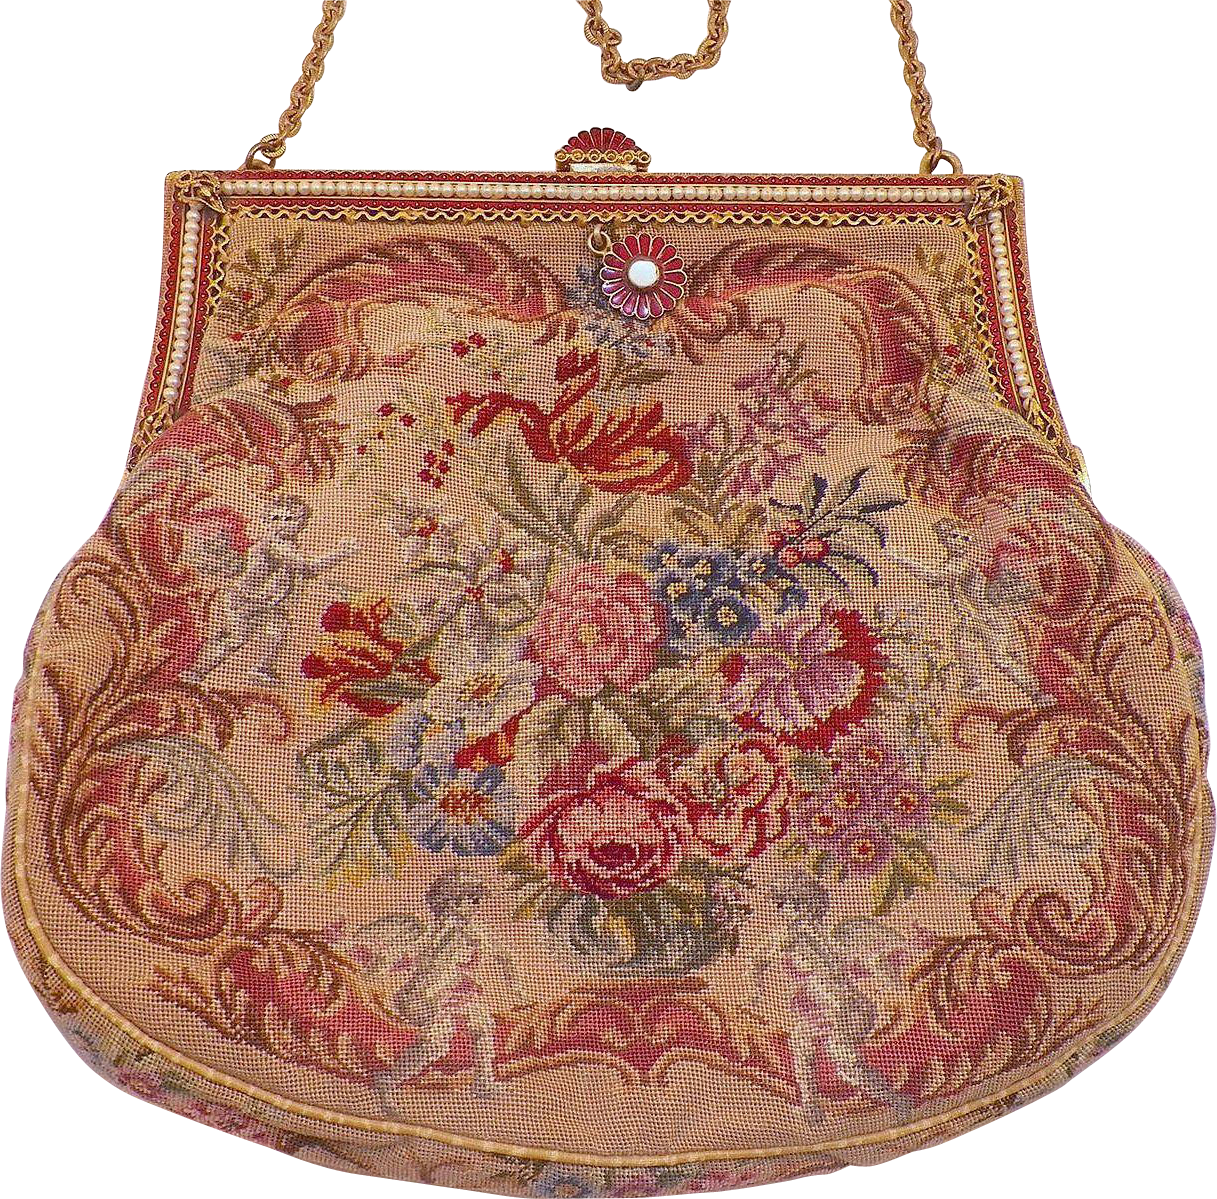 Vintage Flowers and Cherubs Needlepoint Purse With Enamel and Faux Pearl Frame